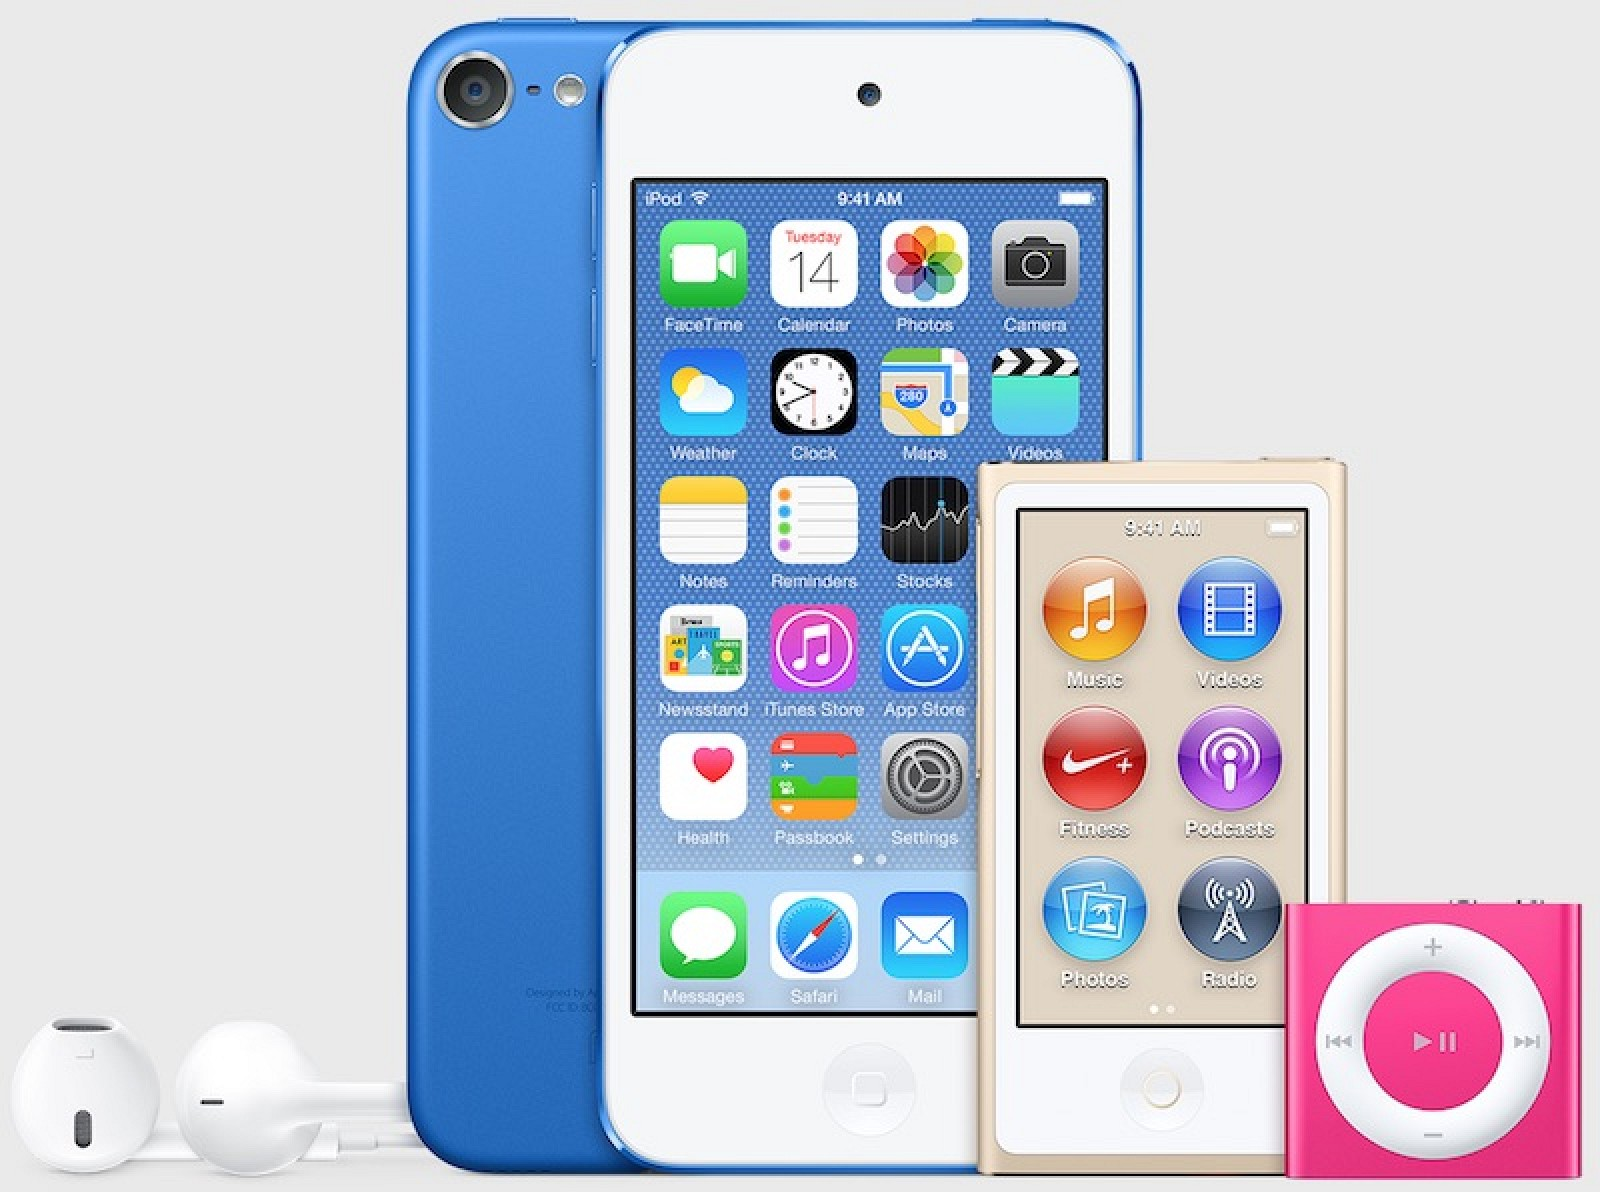 iPods in Unreleased Colors Spotted in iTunes 12.2 - Mac Rumors